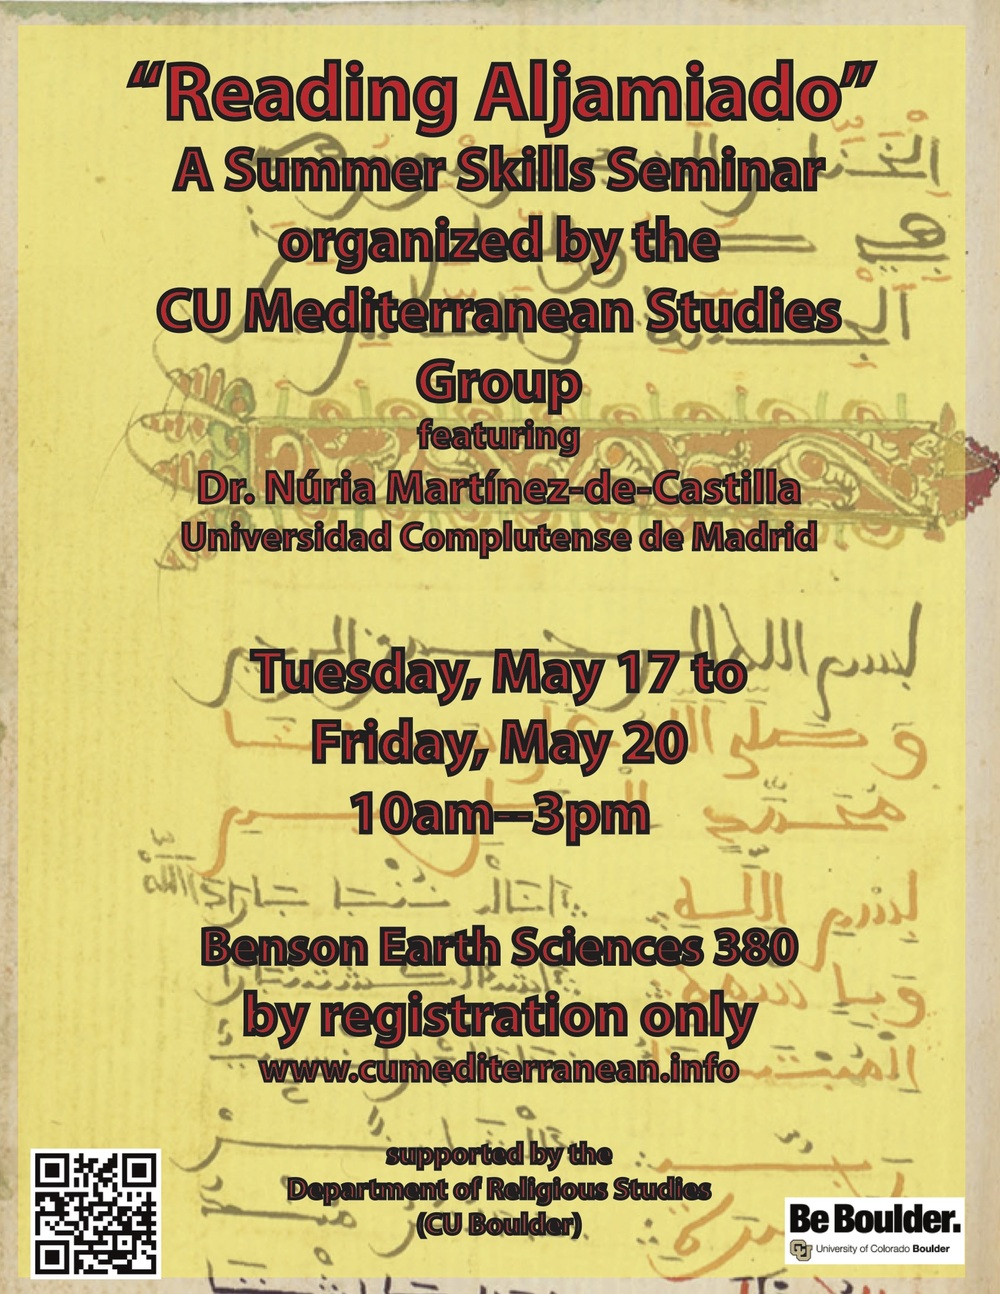 cu mediterranean studies group the mediterranean seminar seminar featuring dr nuria martínez de castilla universidad complutense de madrid • cu boulder • see the announcement • applications are closed